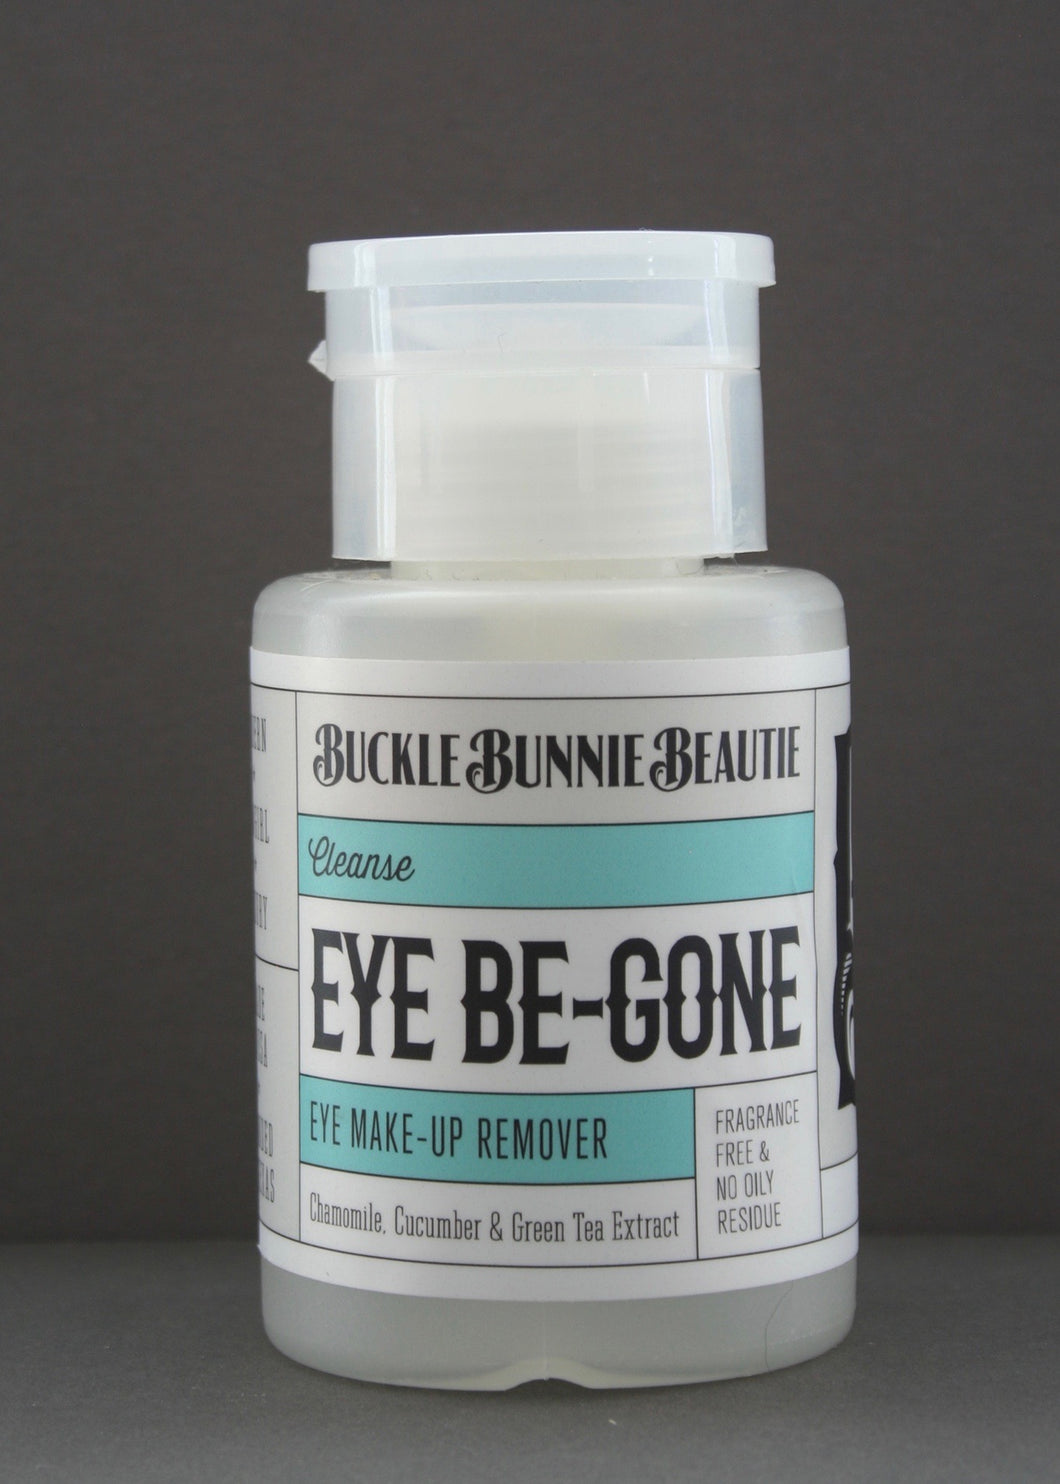 EYE BE-GONE Eye Make-up Remover